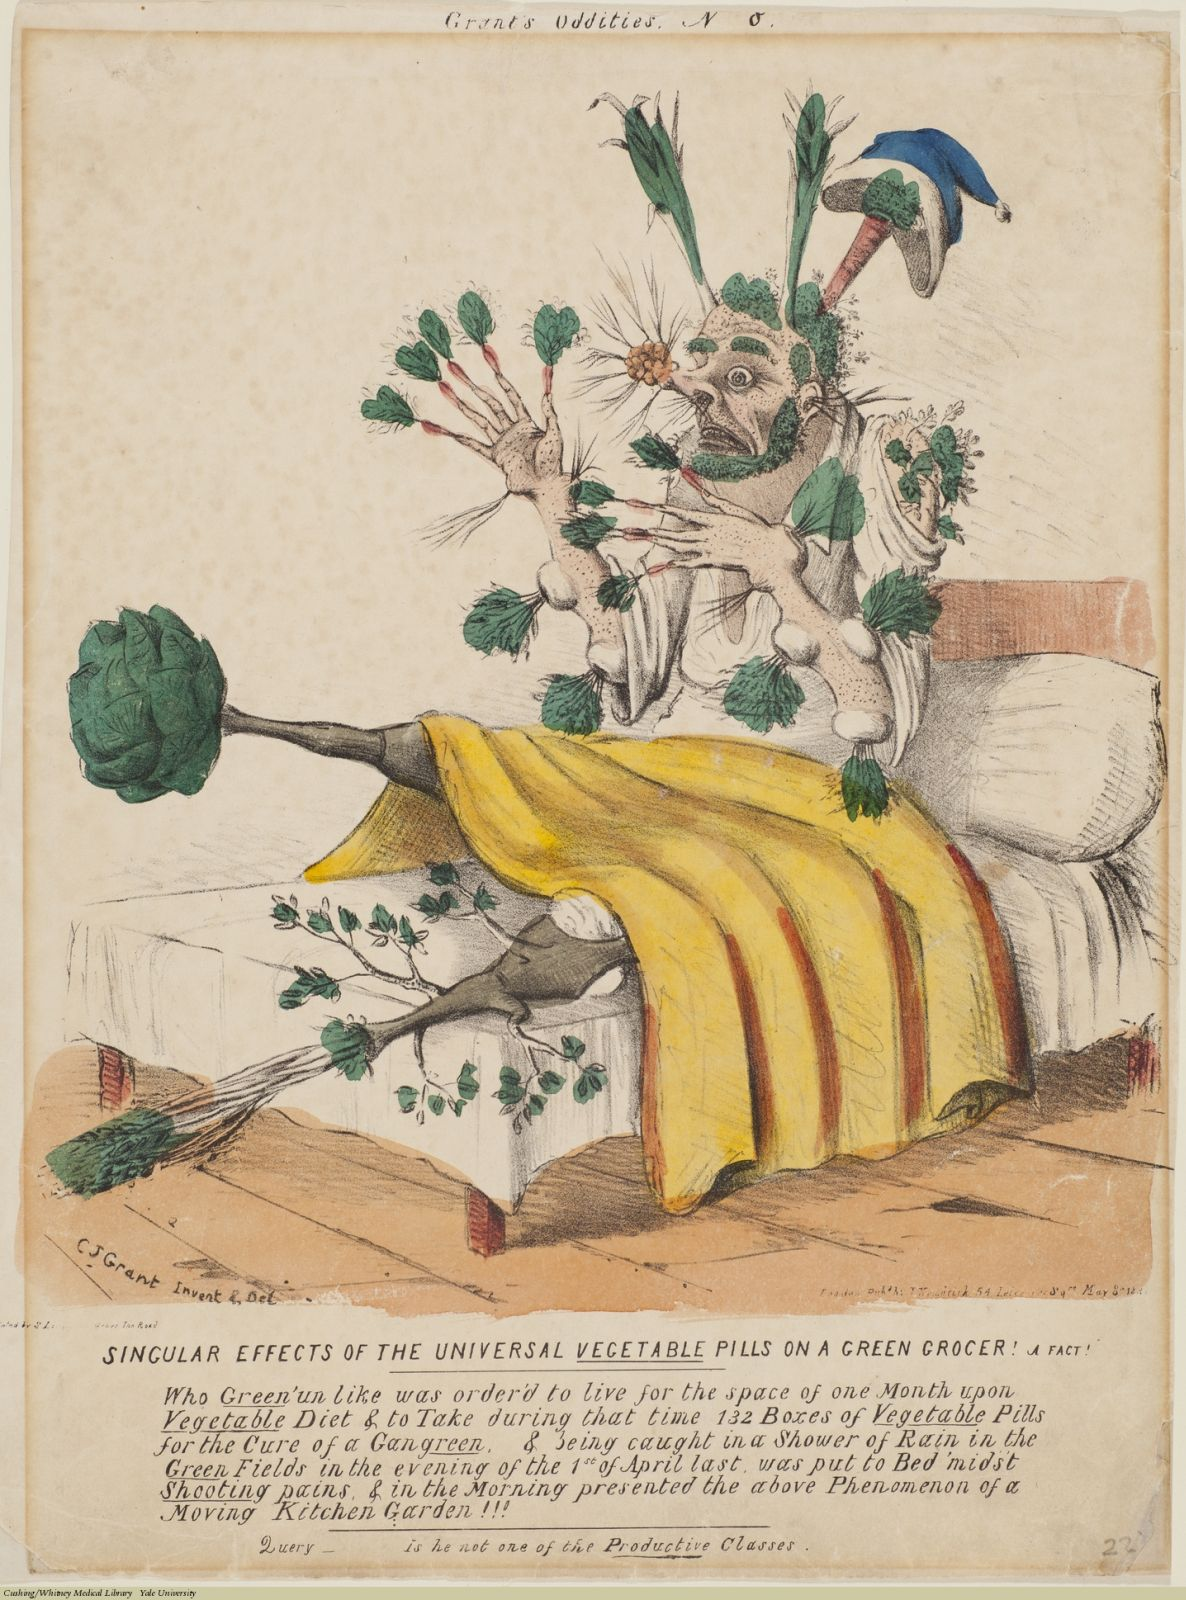 Singular Effects Of The Universal Vegetable Pills... Charles Jameson Grant, Lithograph coloured. Subject: Proprietary Medicines, James Morison, Morison's Pills, Vegetable compounds.